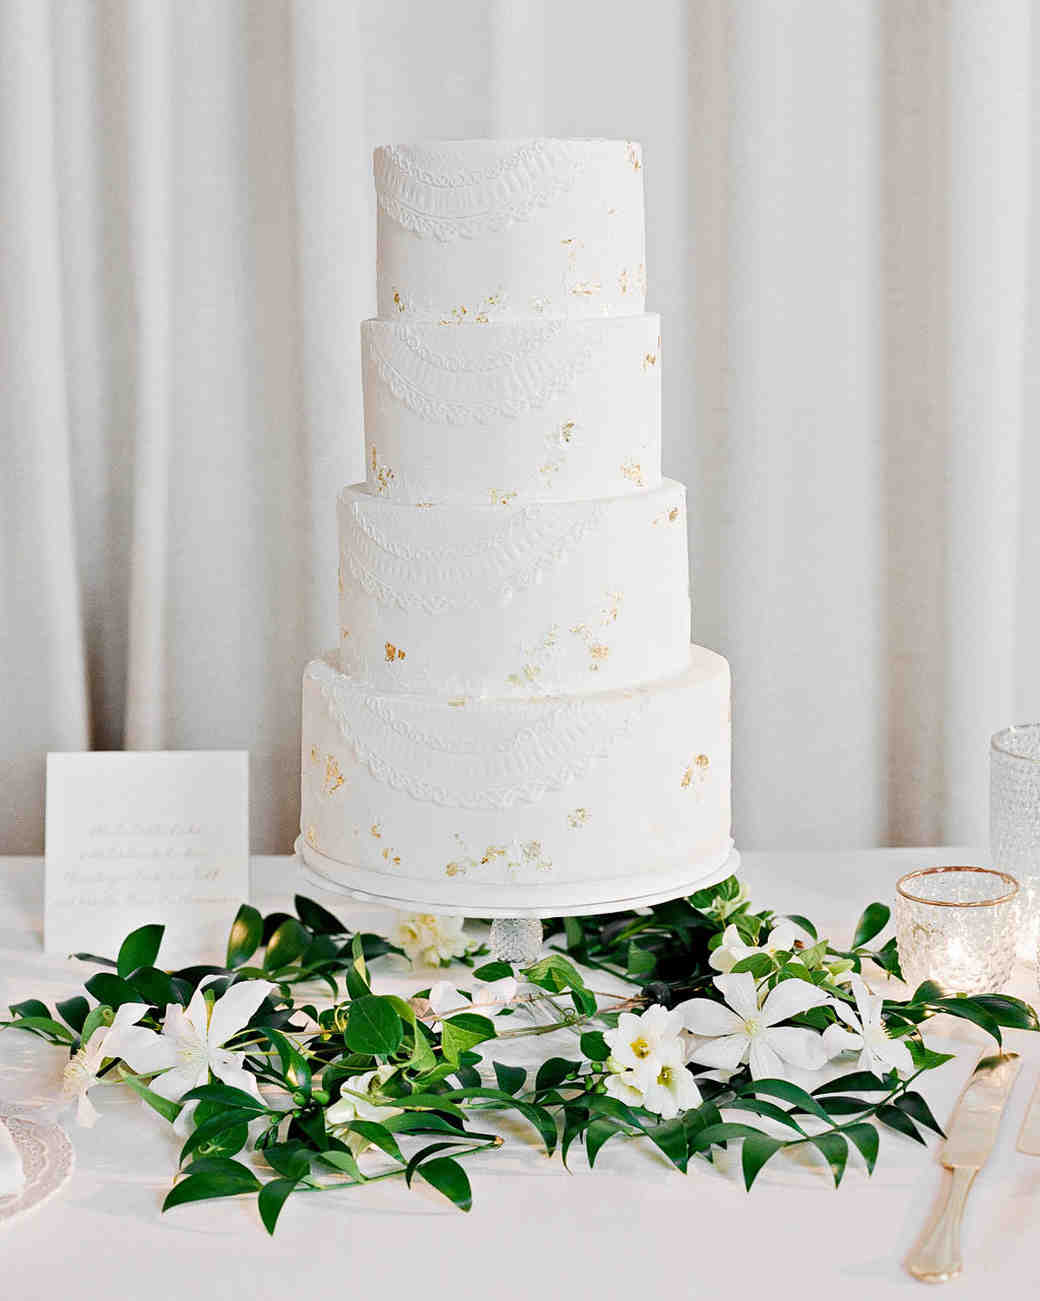 White Tiered Wedding Cake with Gold Details